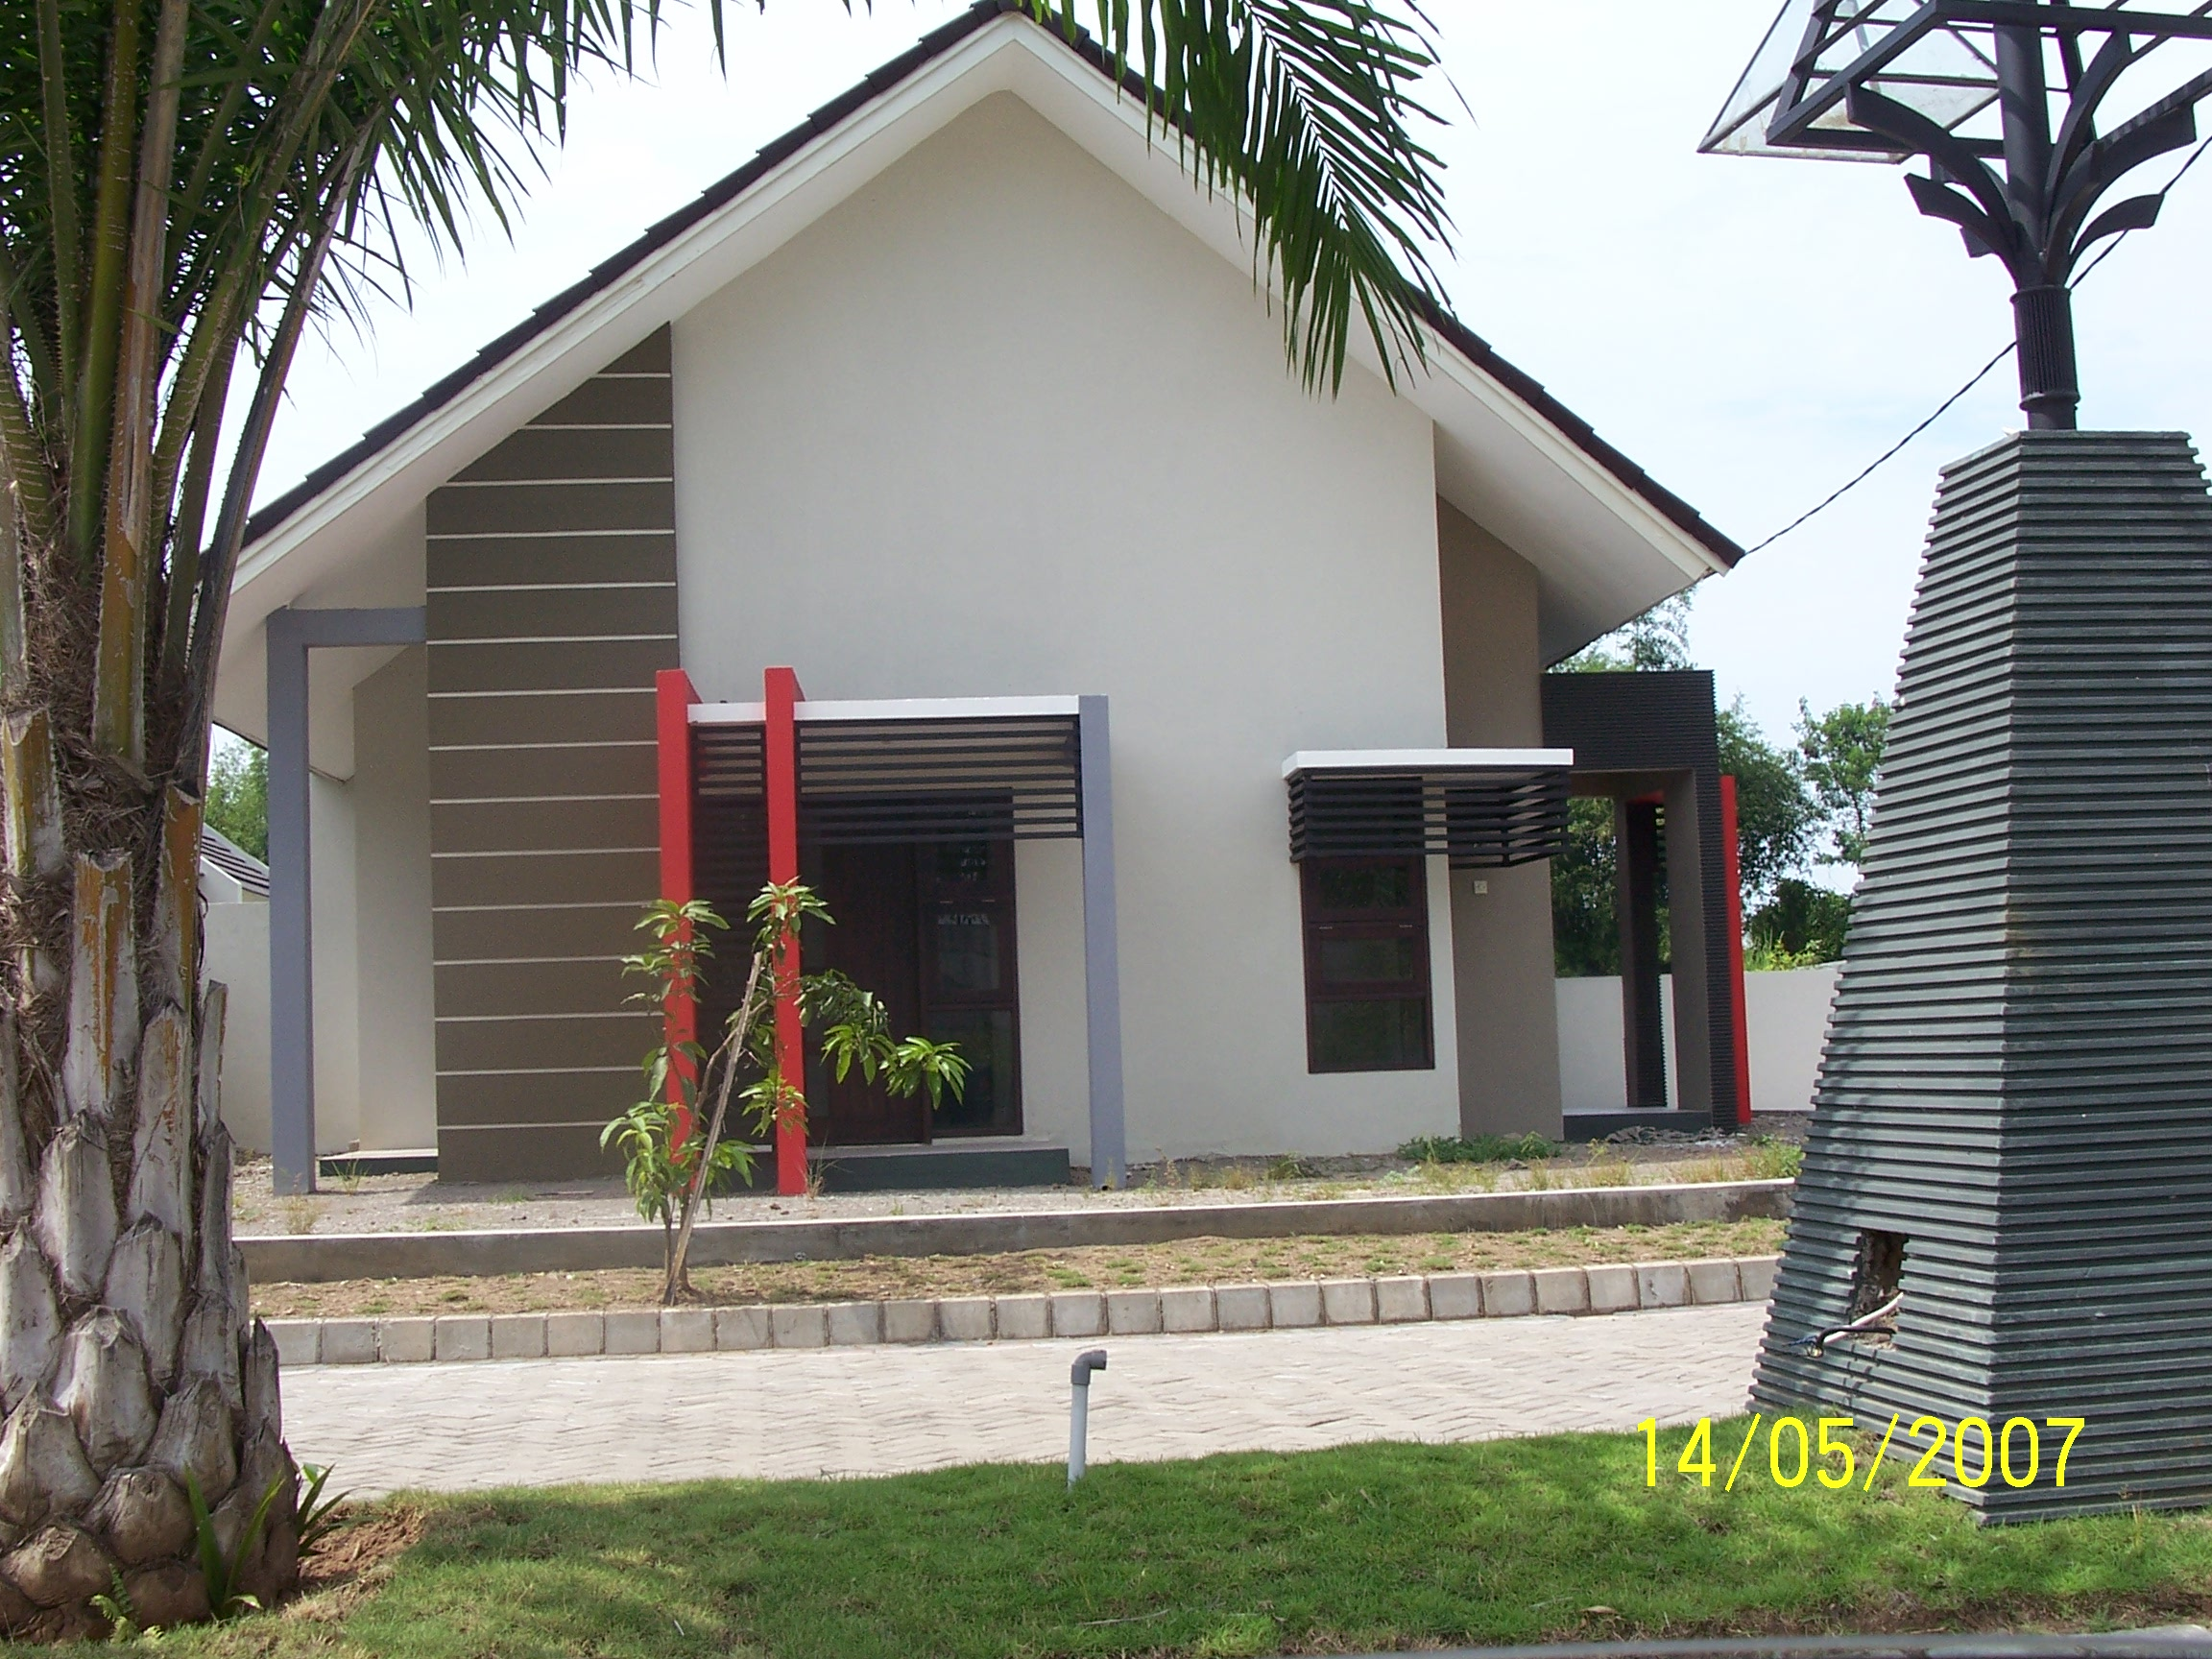 Exterior design rumah 1 pondok design for Exterior design of small houses